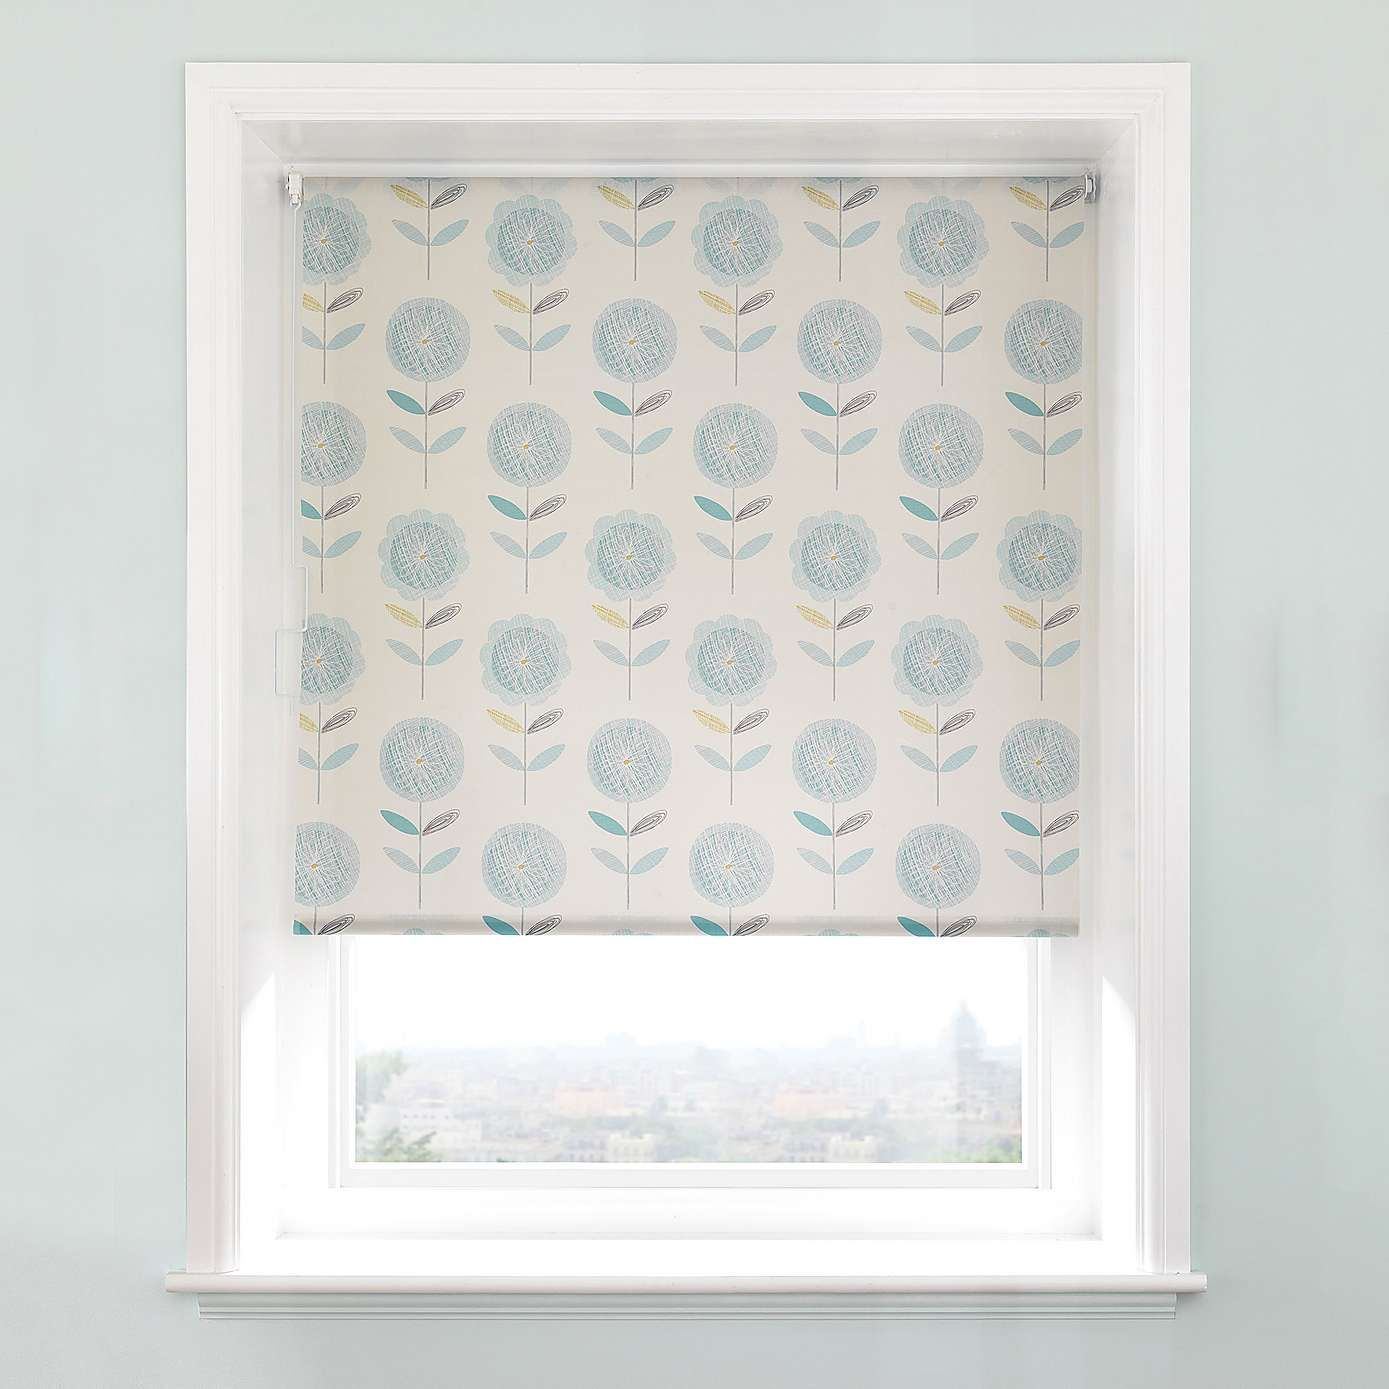 Elba Teal Floral Daylight Cordless Roller Blind